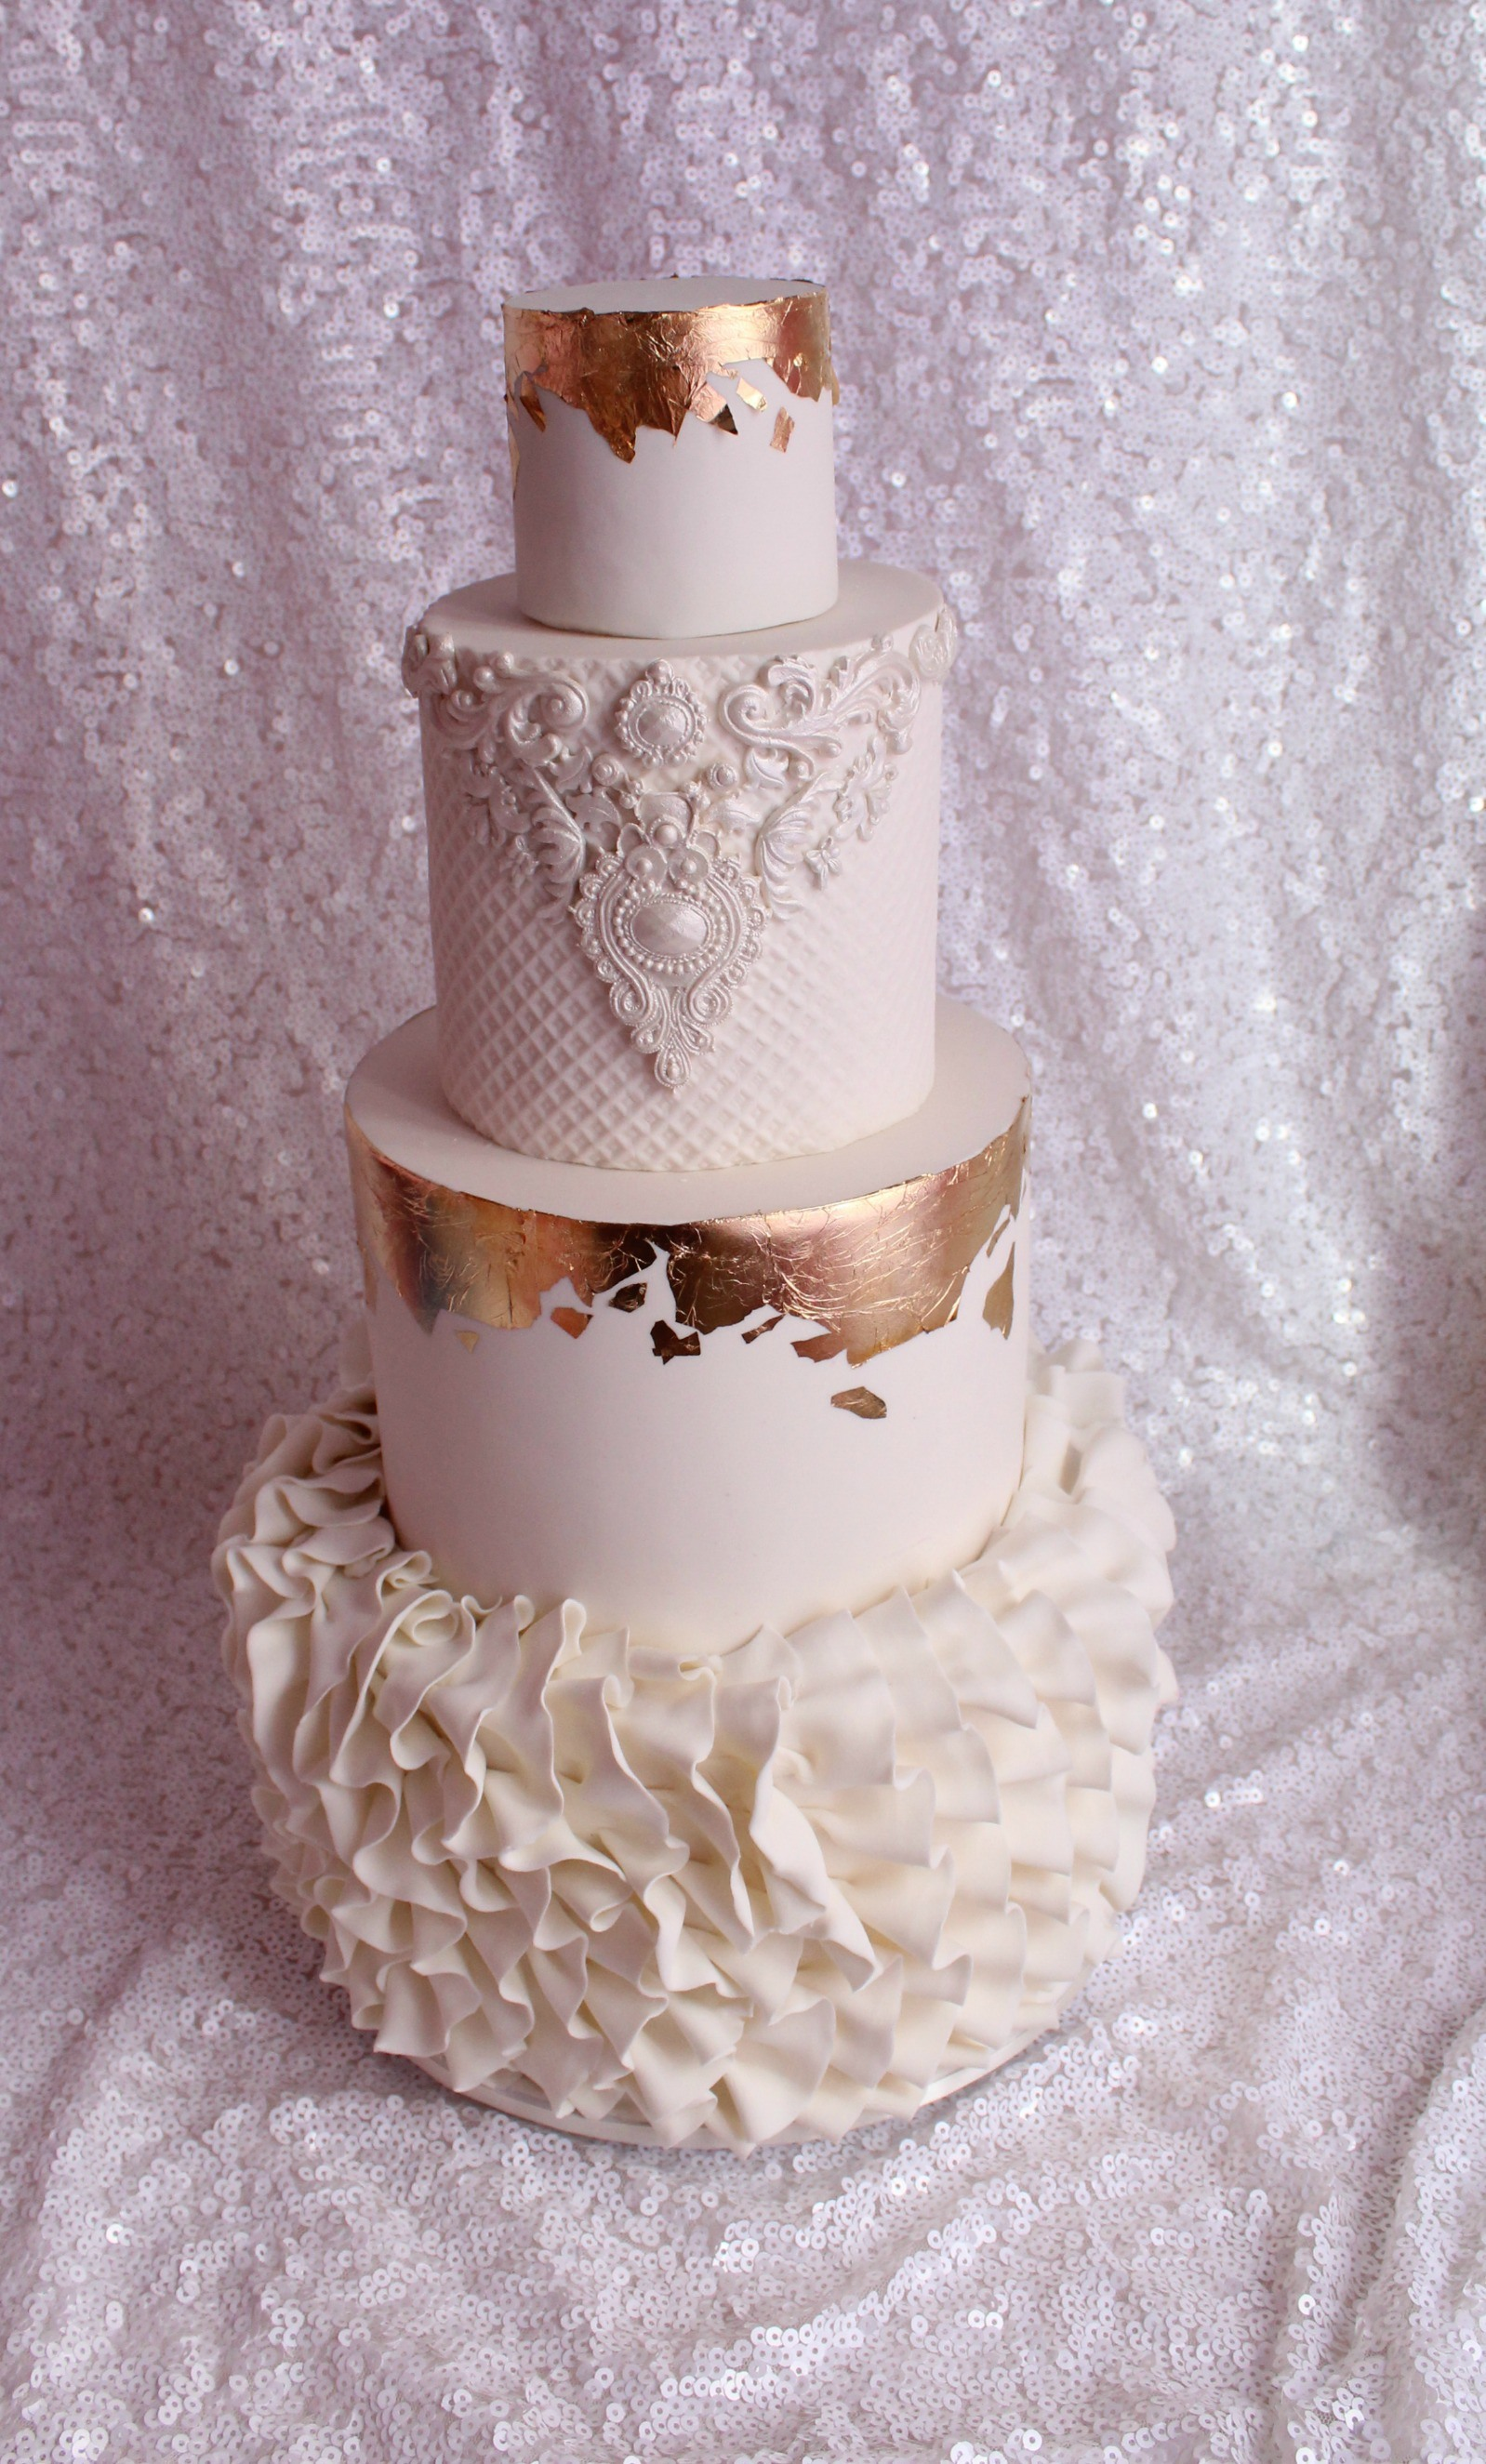 White wedding cake with ruffles